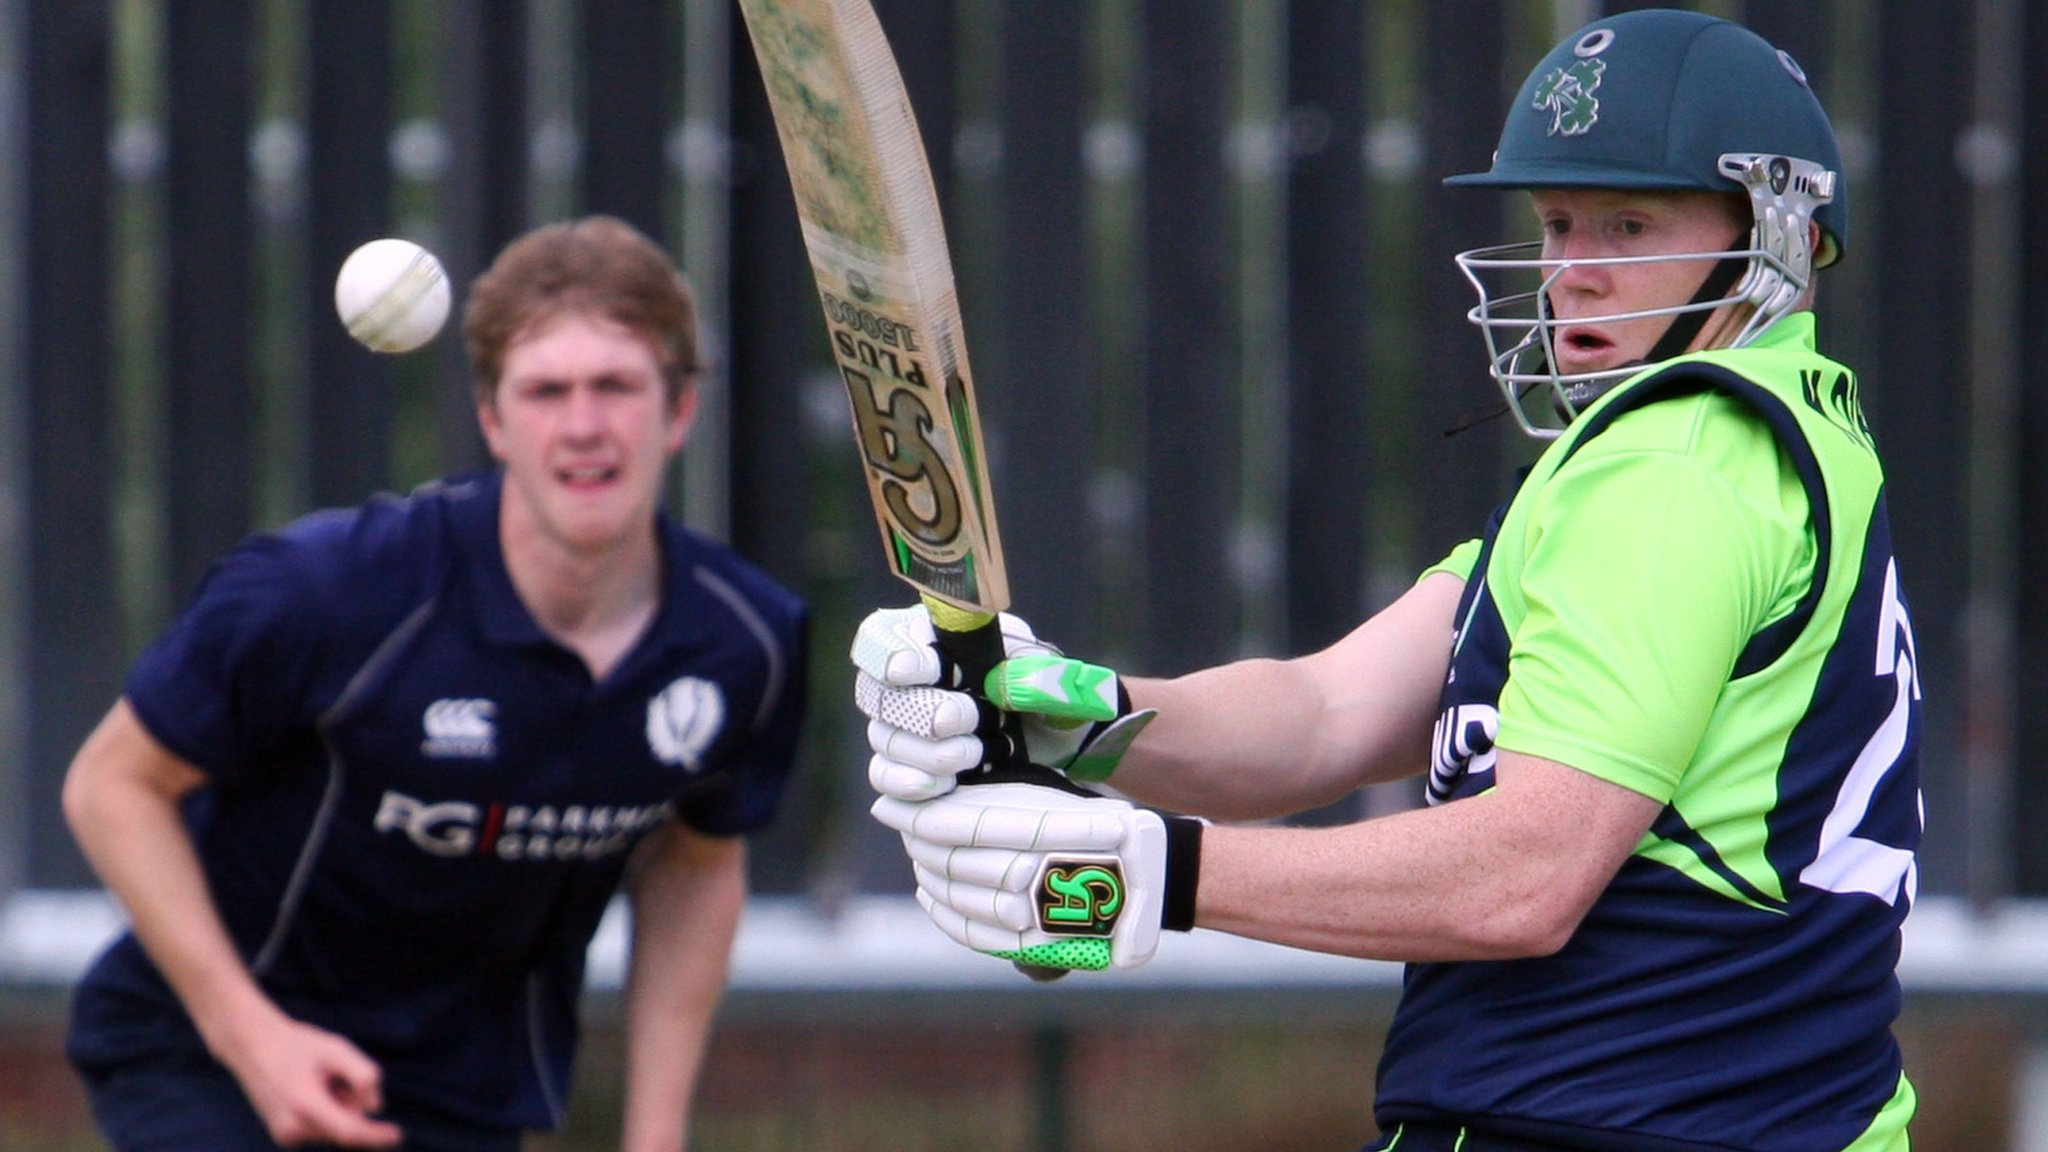 New competition between Irish, Scottish and Dutch city teams is named Euro T20 Slam